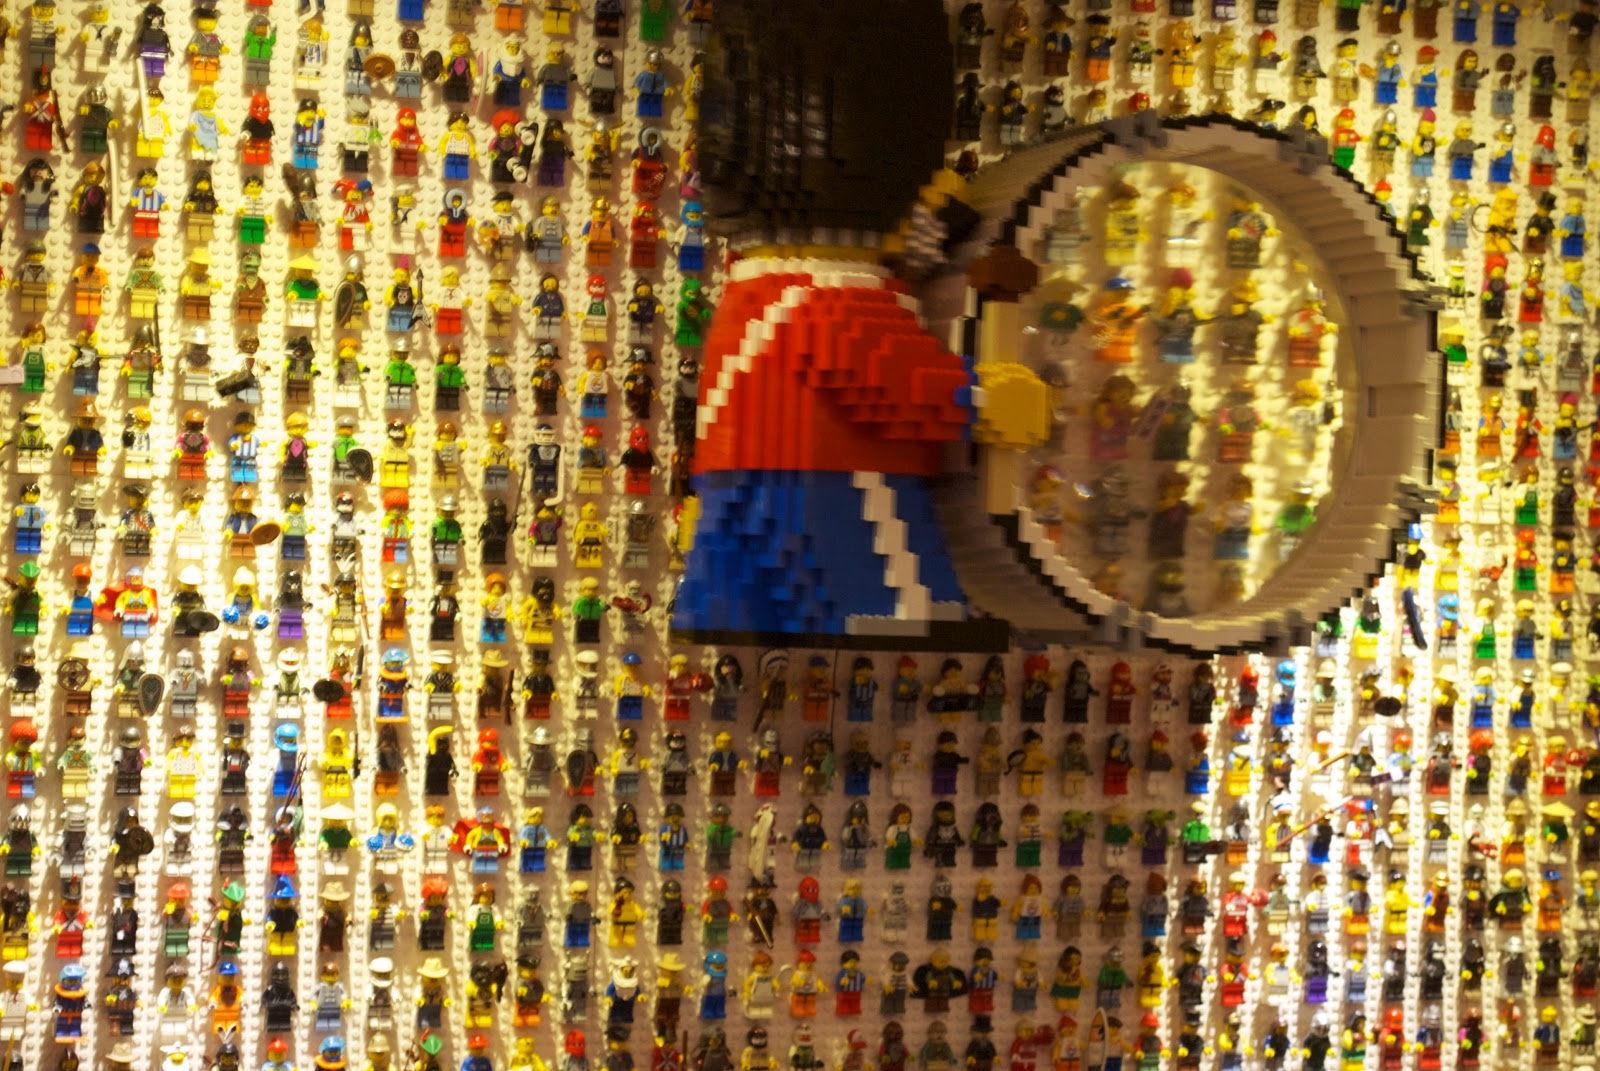 Inside There Are Fabulous Displays Of Lego Minifigures In